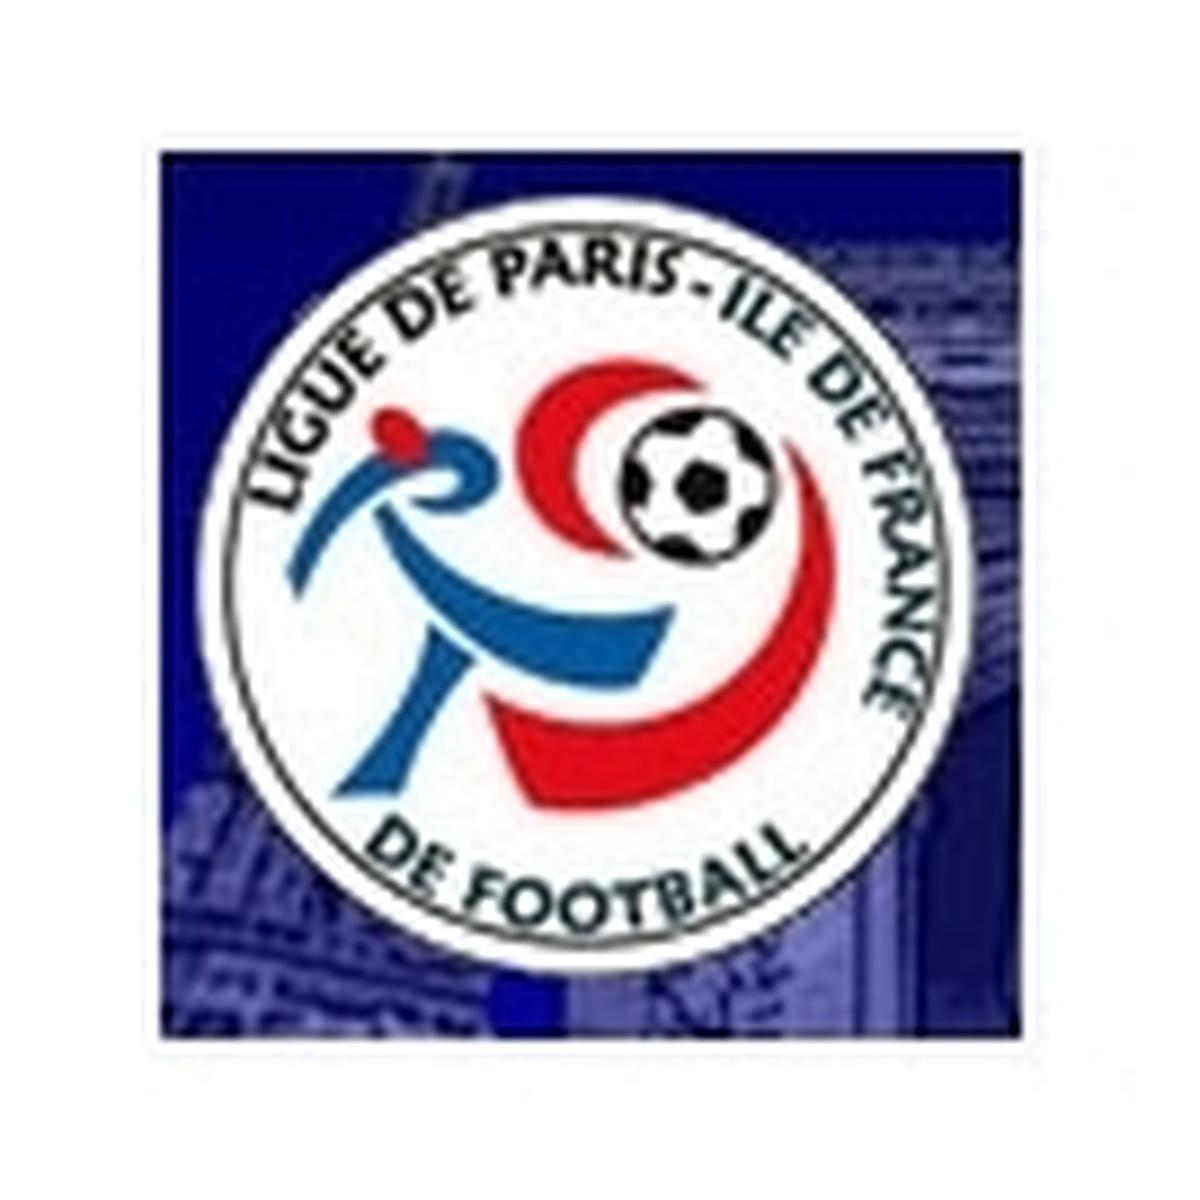 Ligue de Paris IDF Football